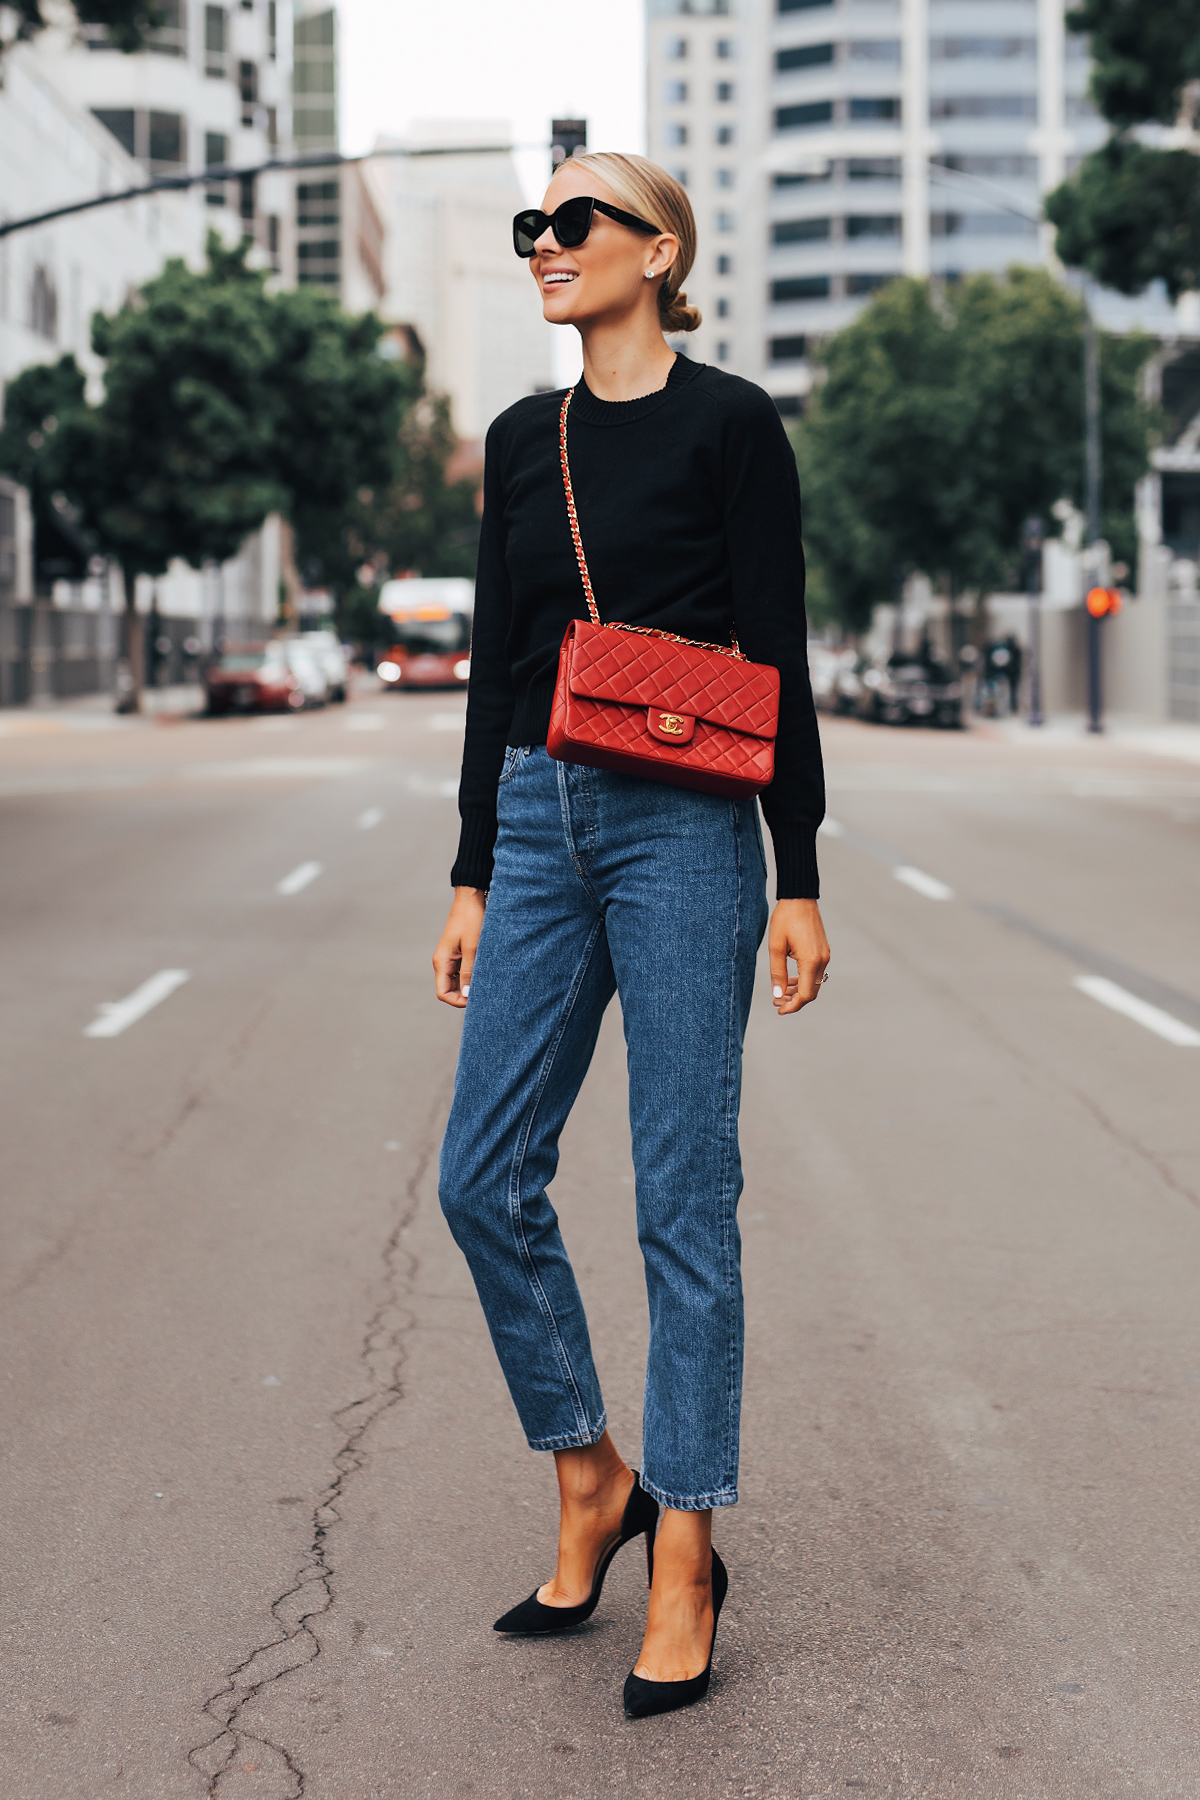 Fashion Jackson Wearing Everlane Black Cashmere Sweater Everlane Relaxed Jeans Black Pumps Chanel Red Handbag